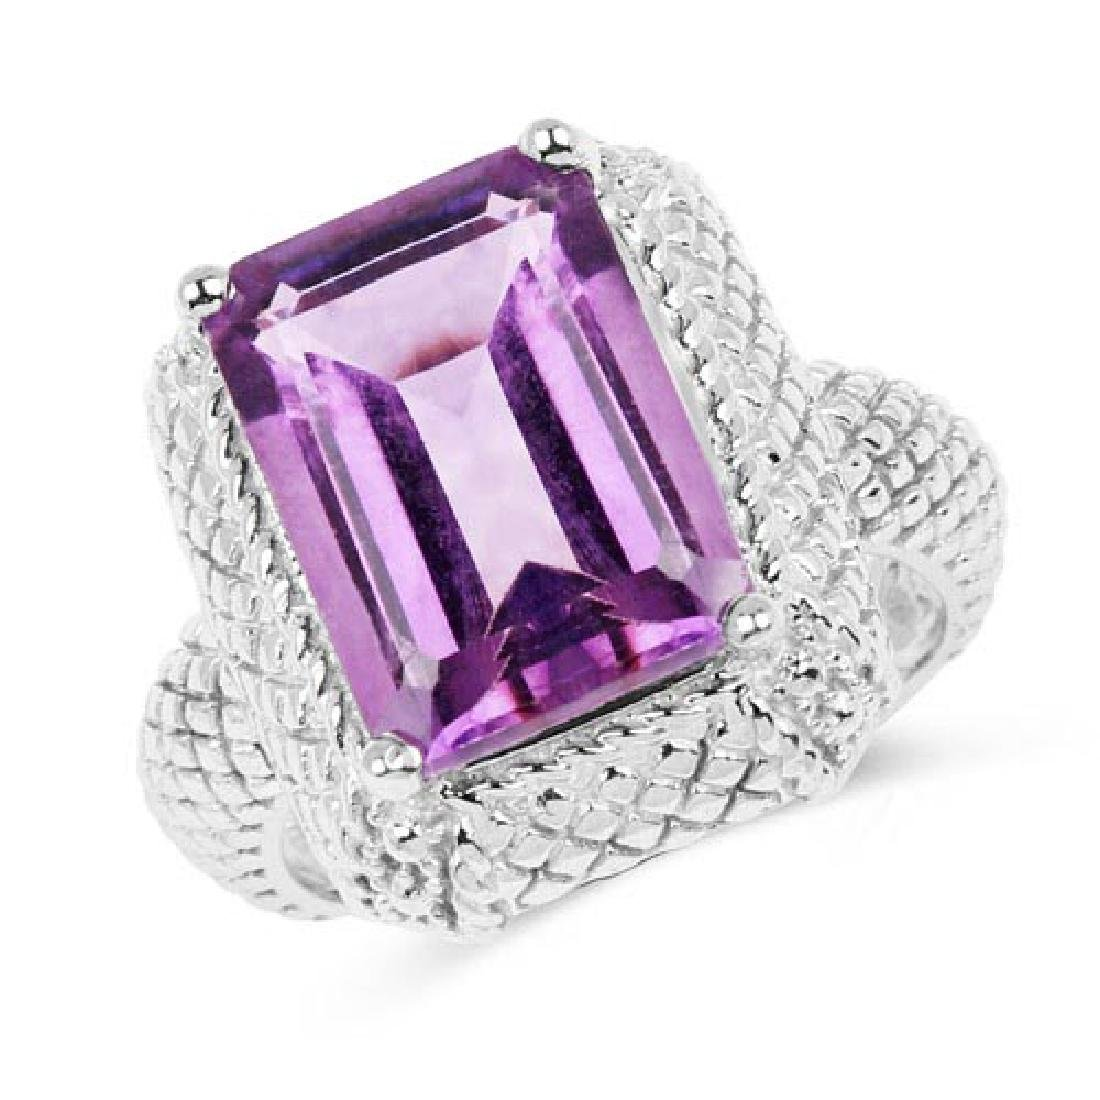 6.54 Carat Genuine Amethyst .925 Sterling Silver Ring